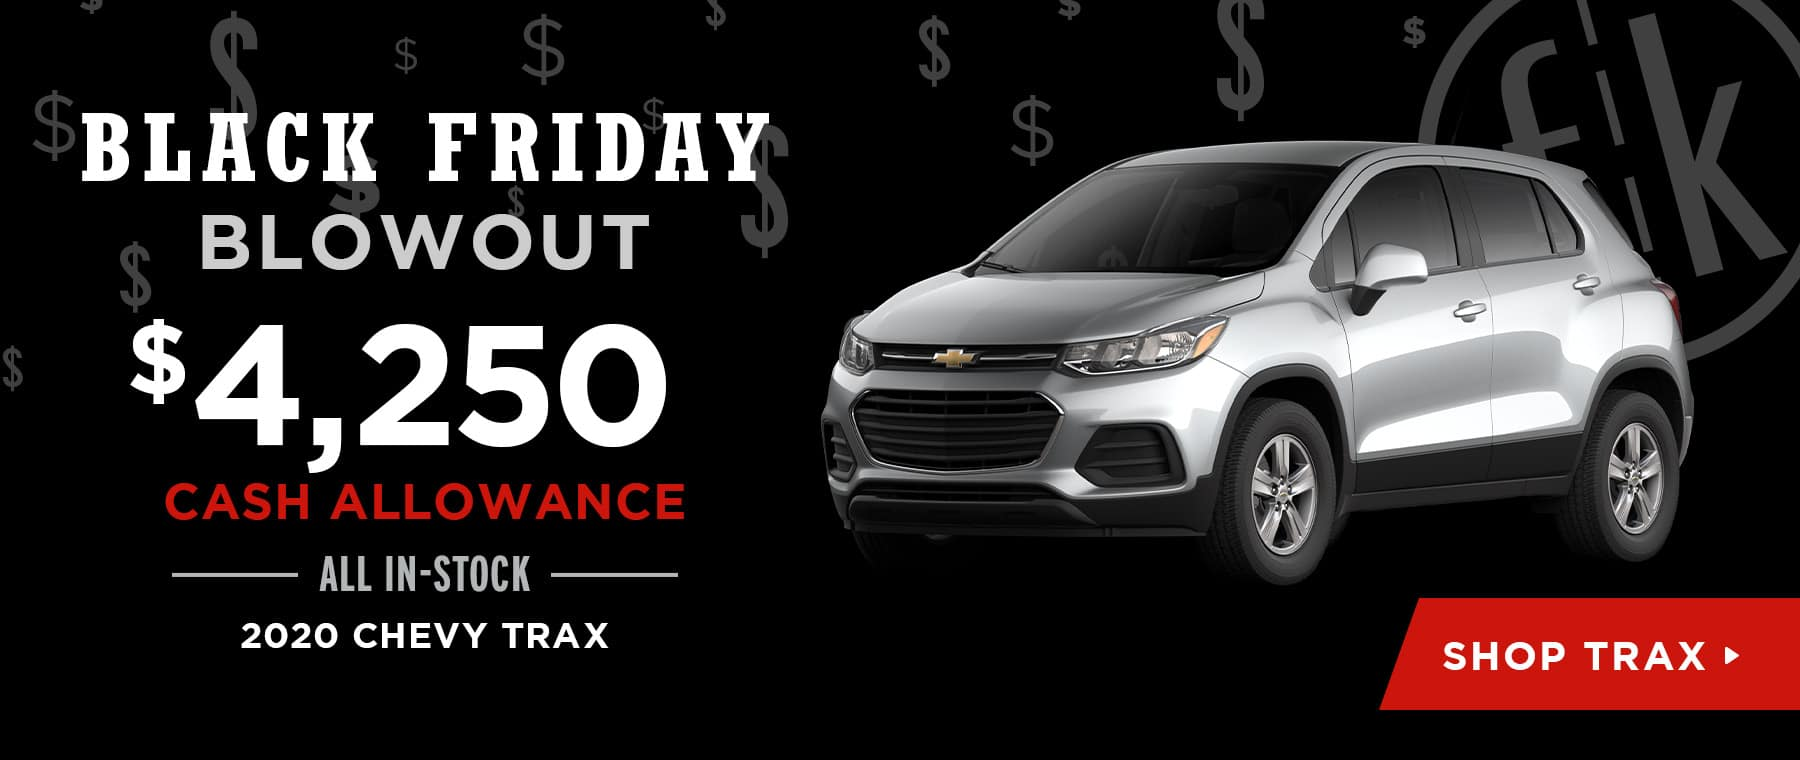 $4,250 Cash Allowance All In-Stock 2020 Chevy Trax